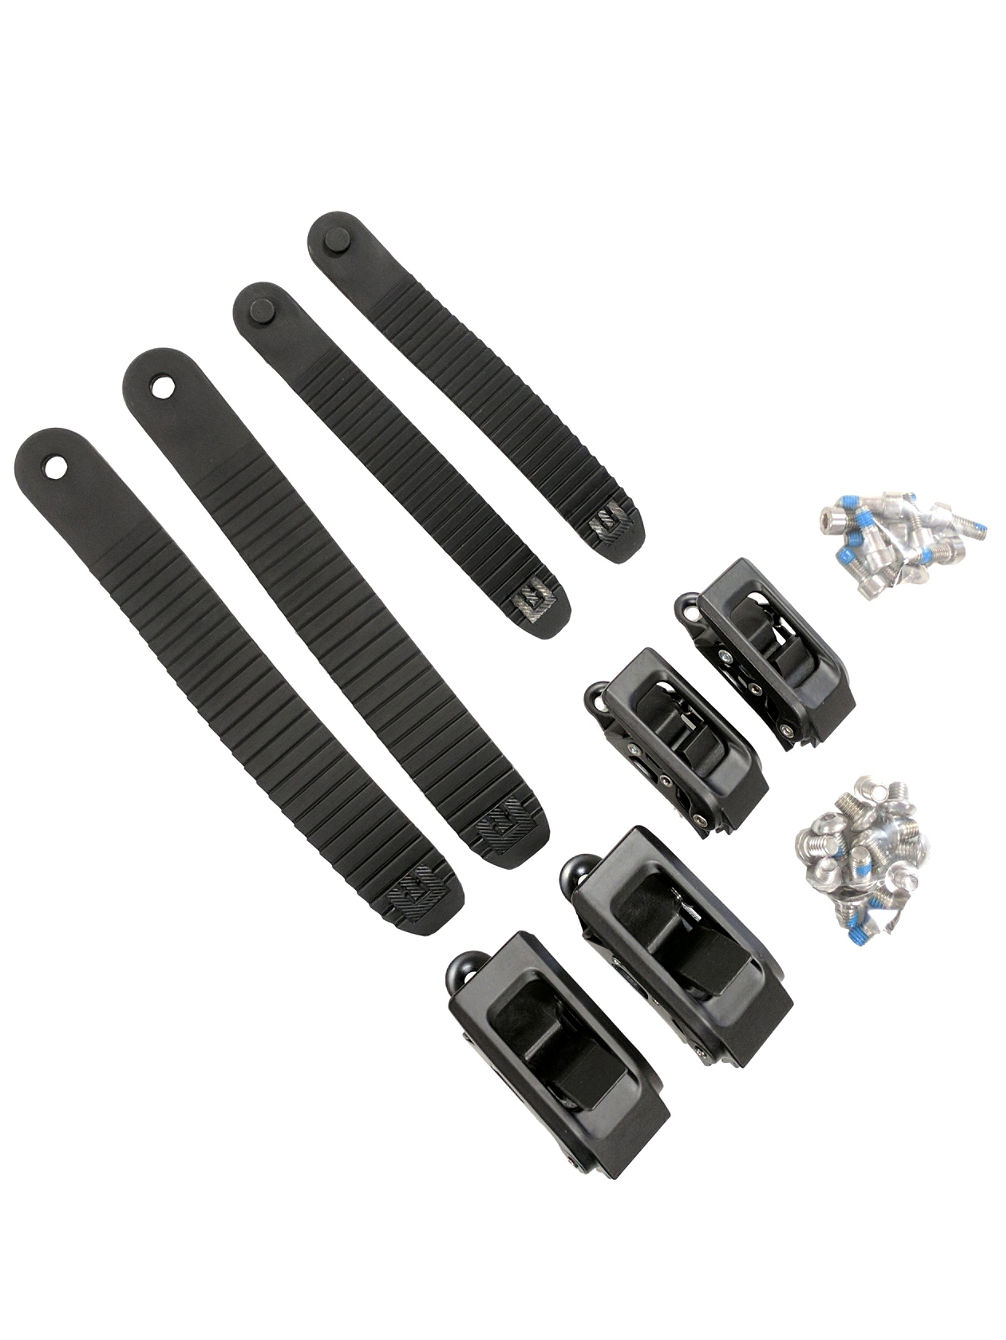 Backcountry Spare Parts Kit